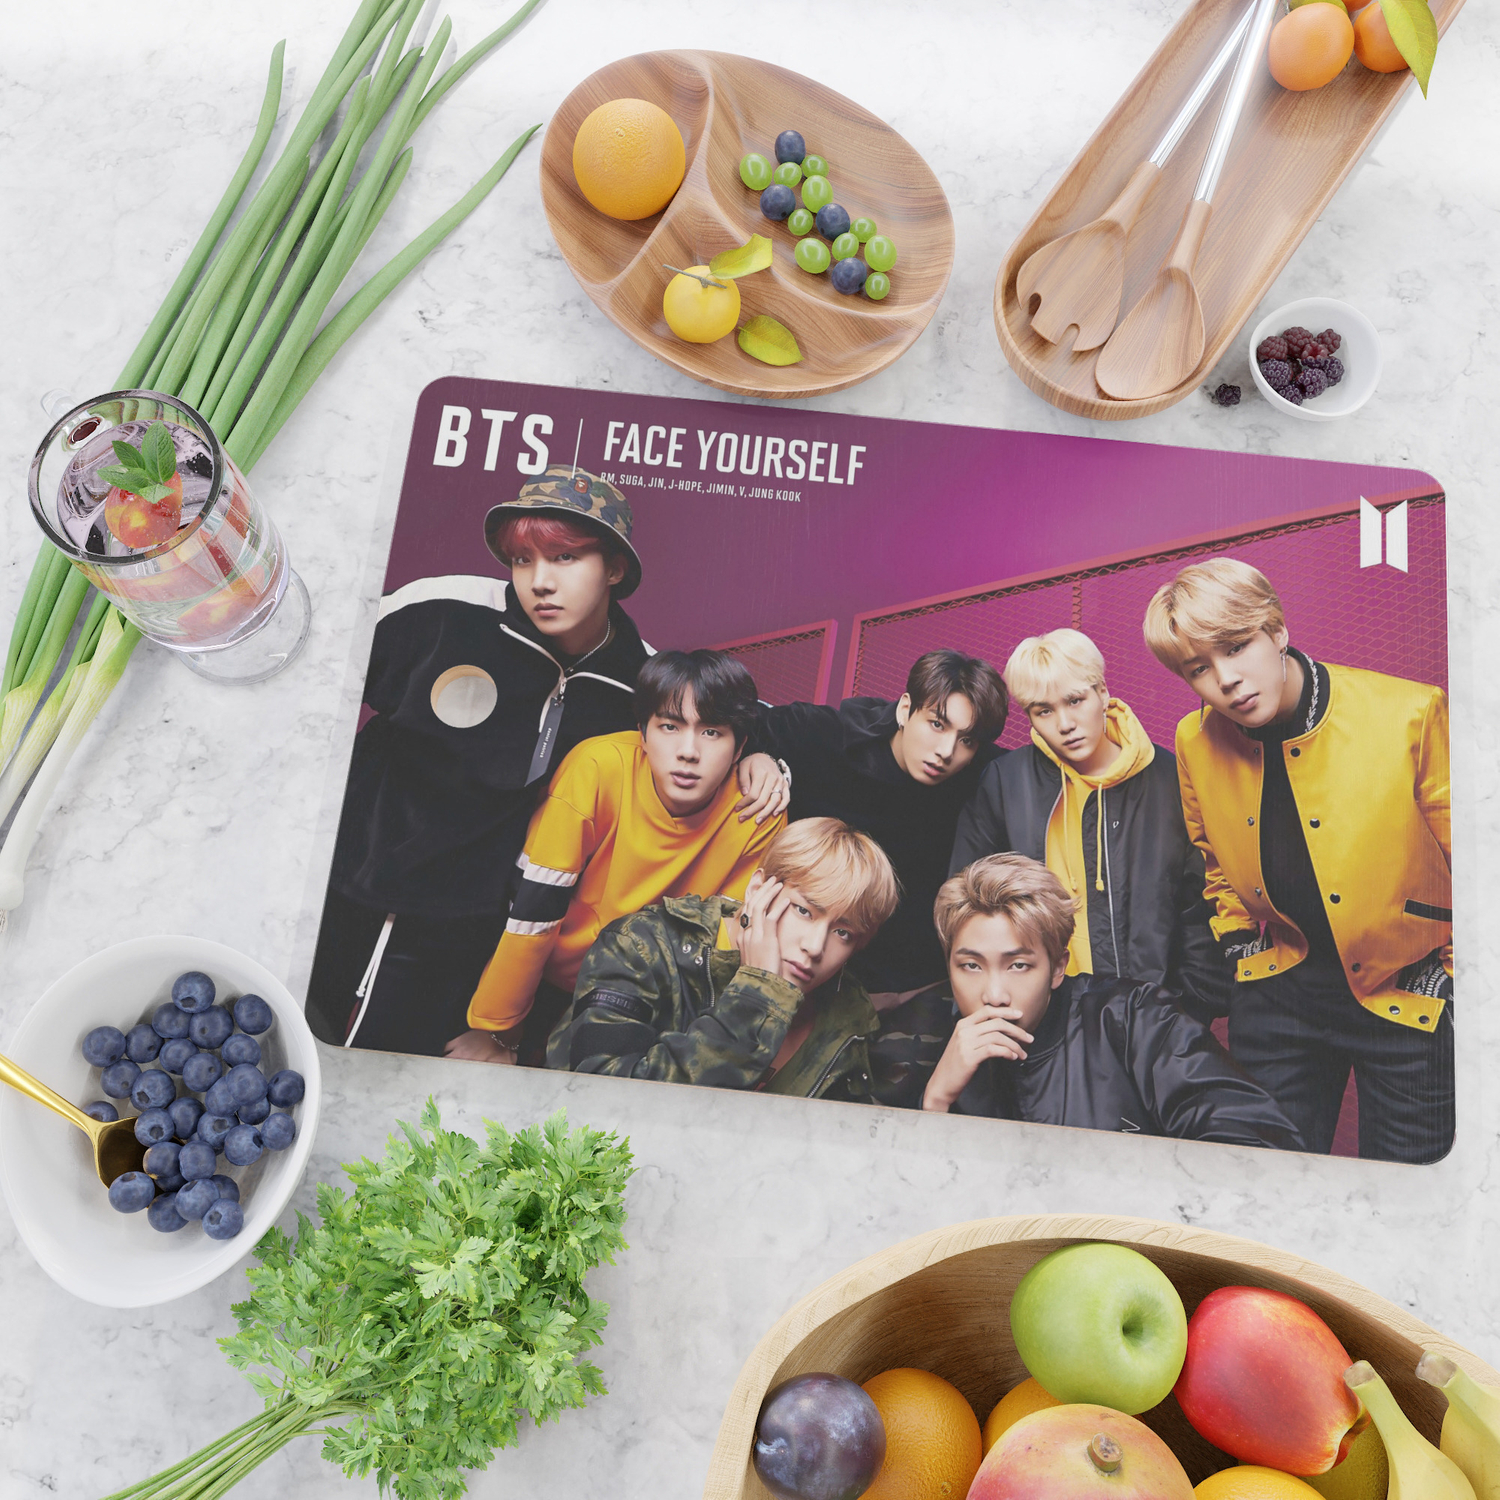 bts face yourself 2 Cutting Board by ynoirb